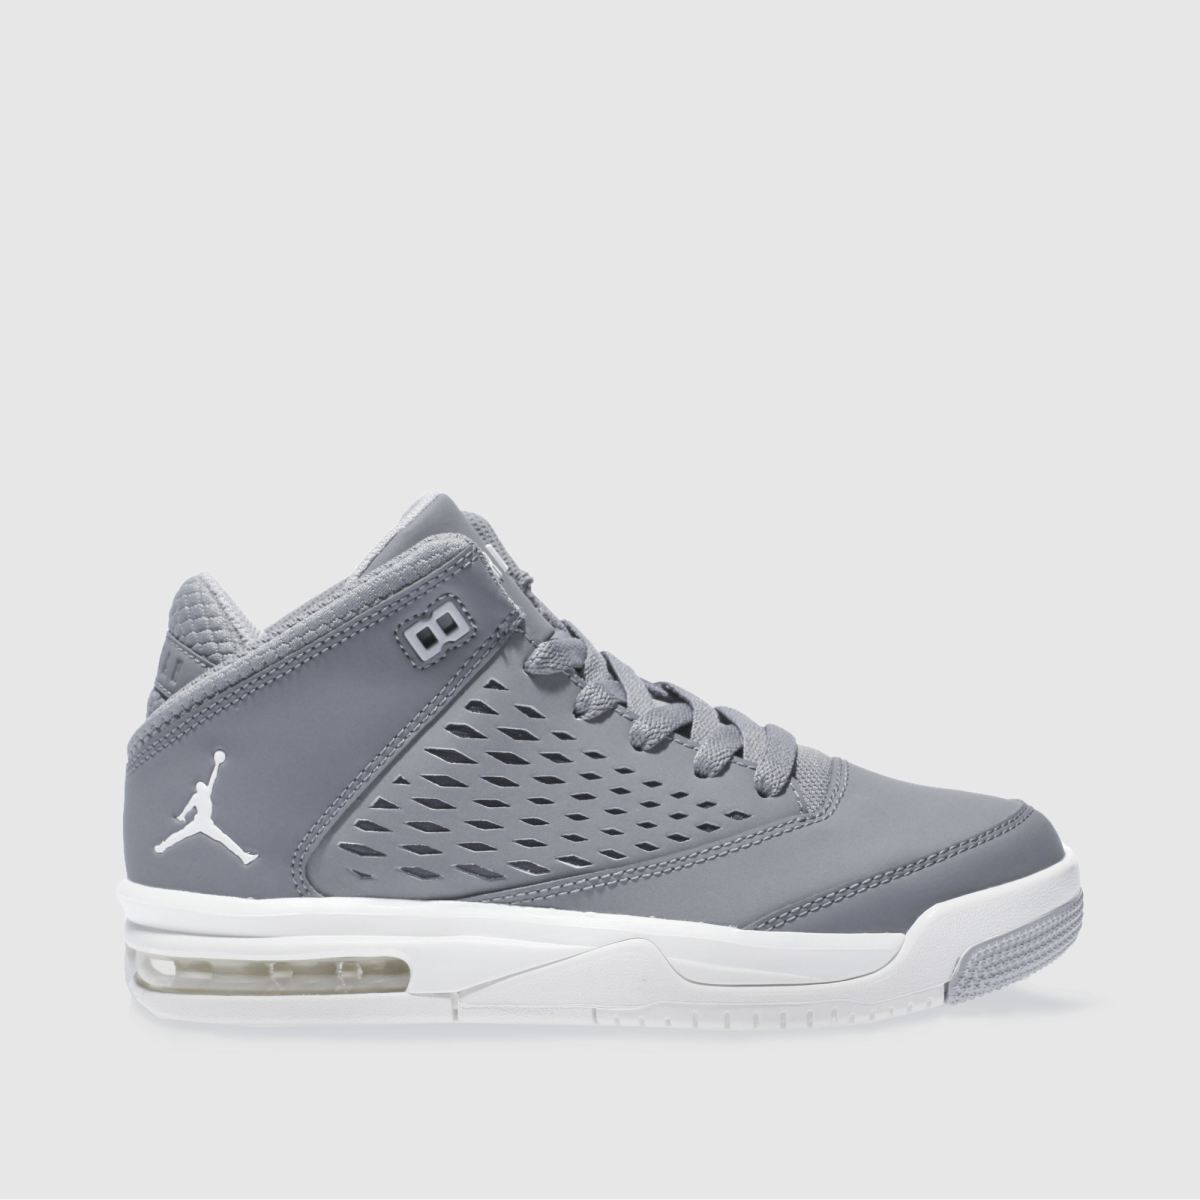 nike jordan grey nike flight origin 4 Youth Trainers